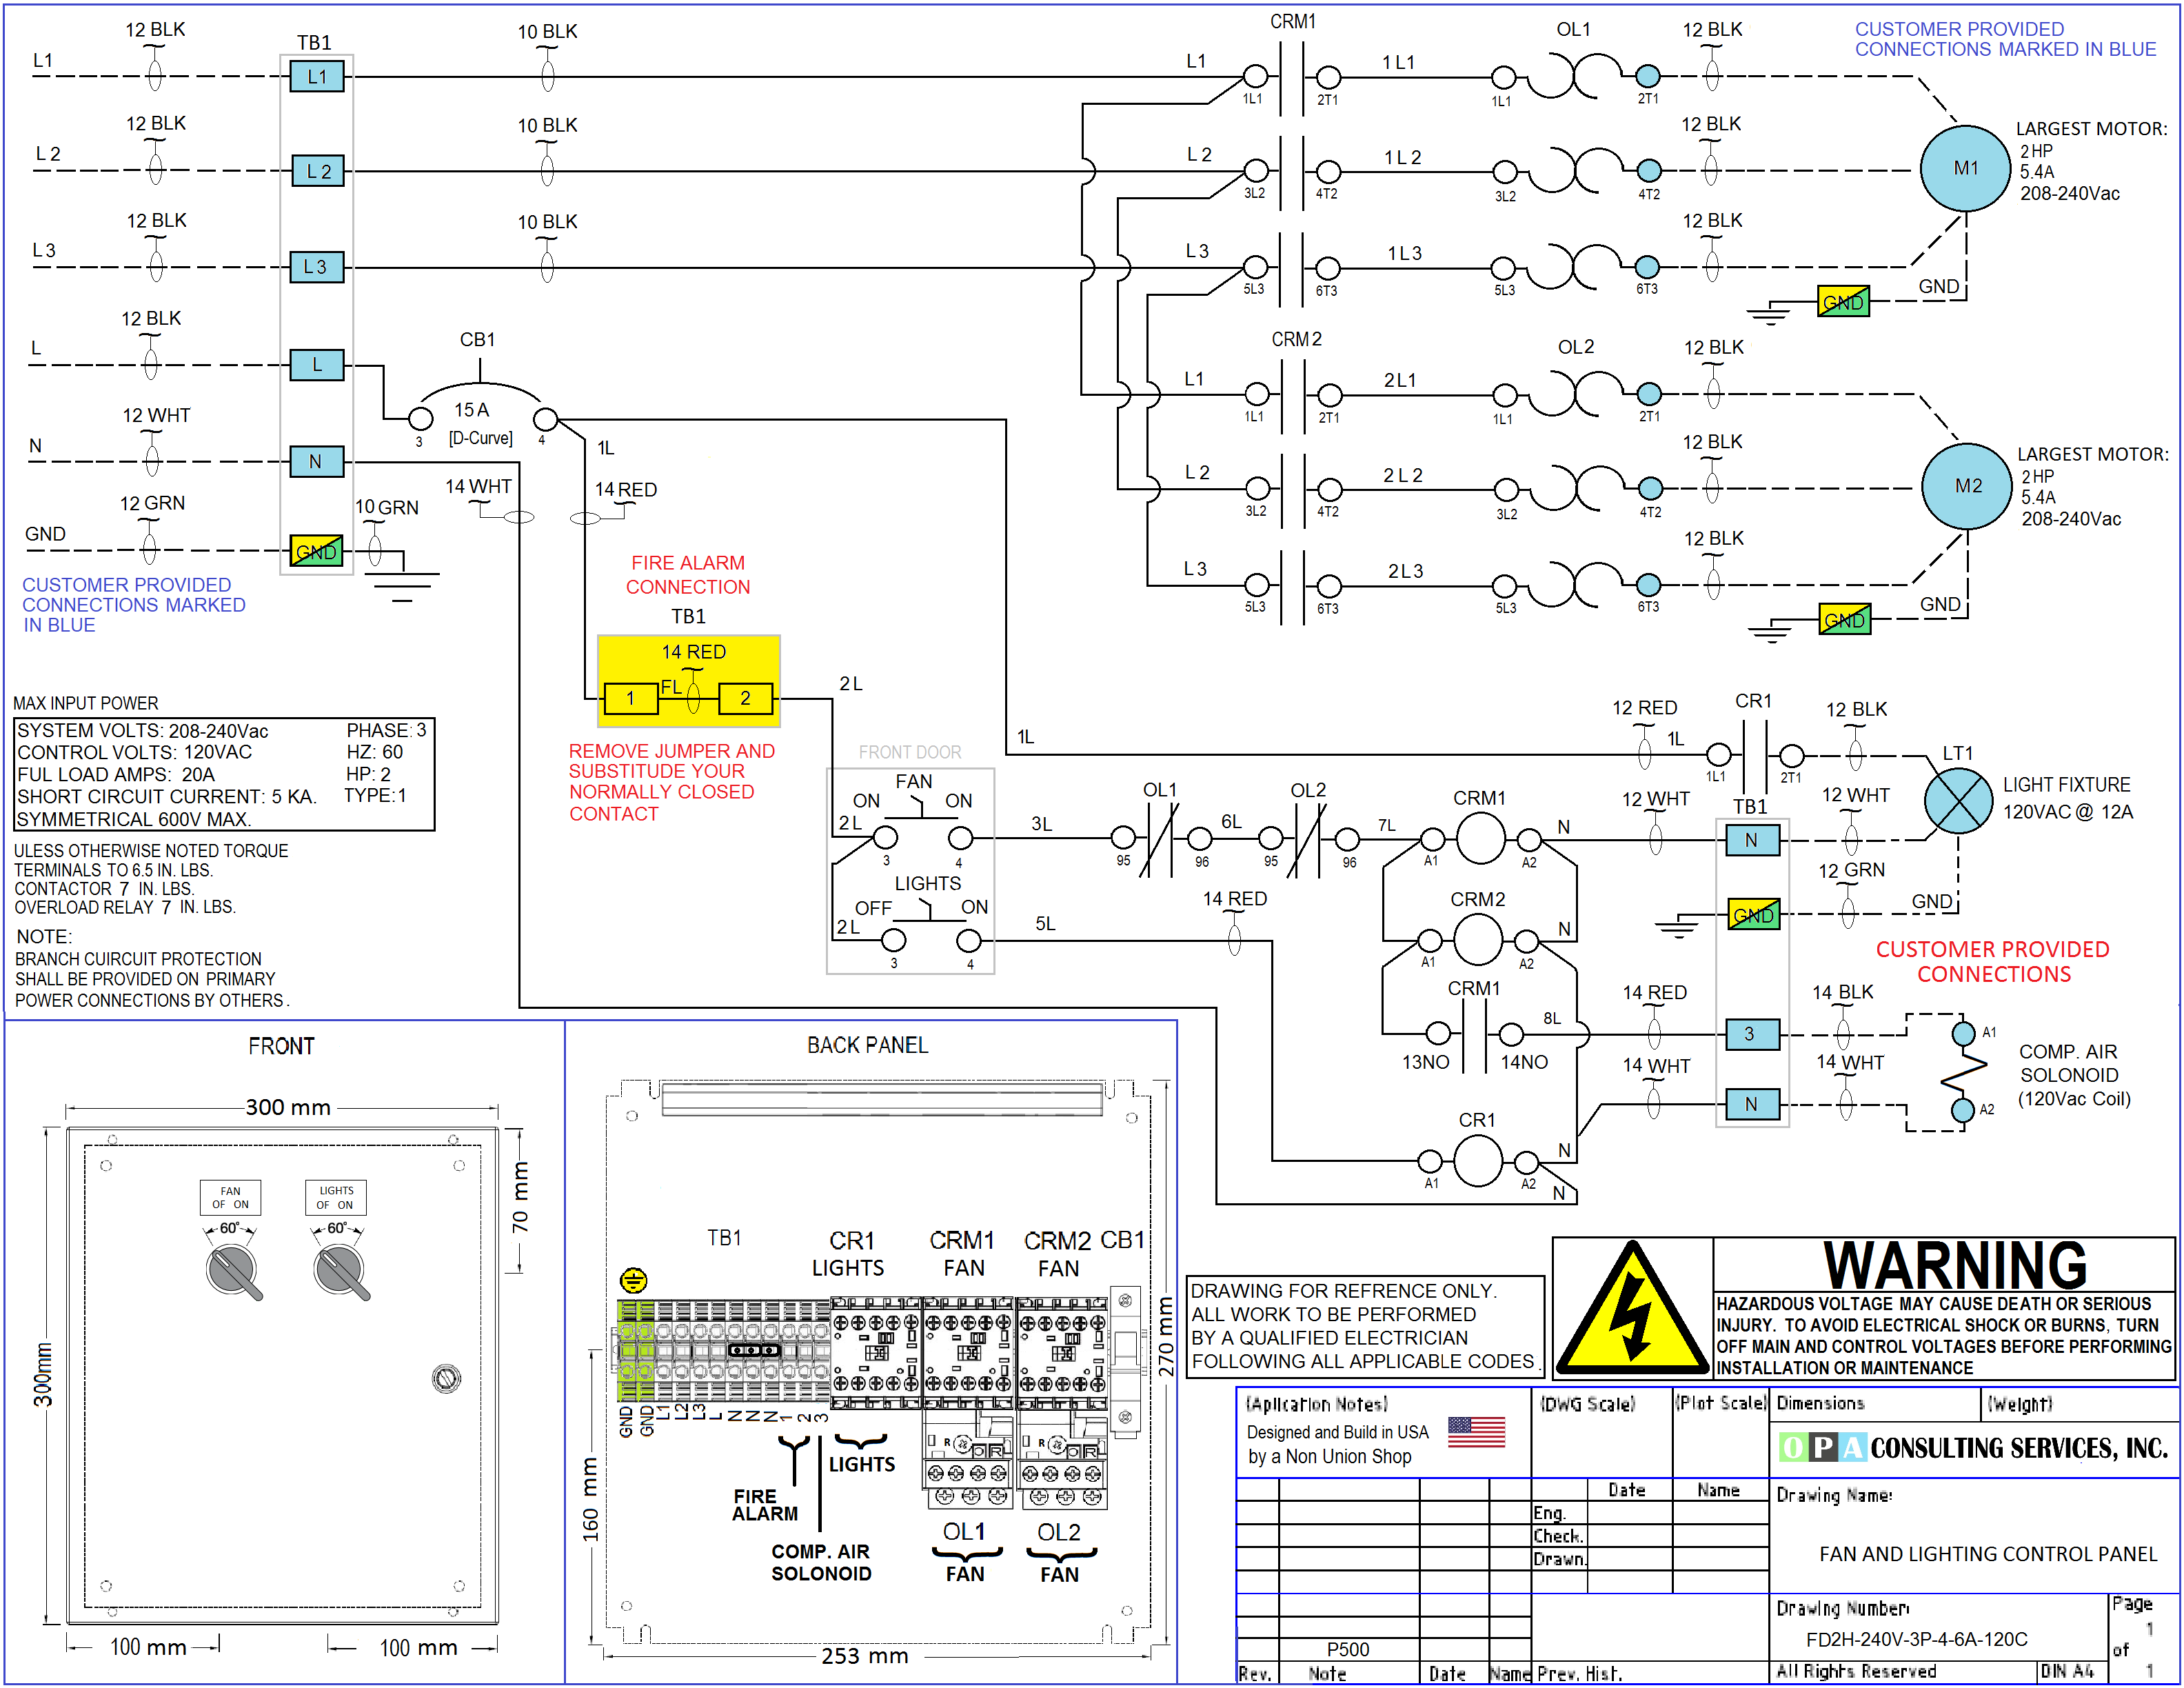 Paint Booth Control Panel Drawing ... Free to Download